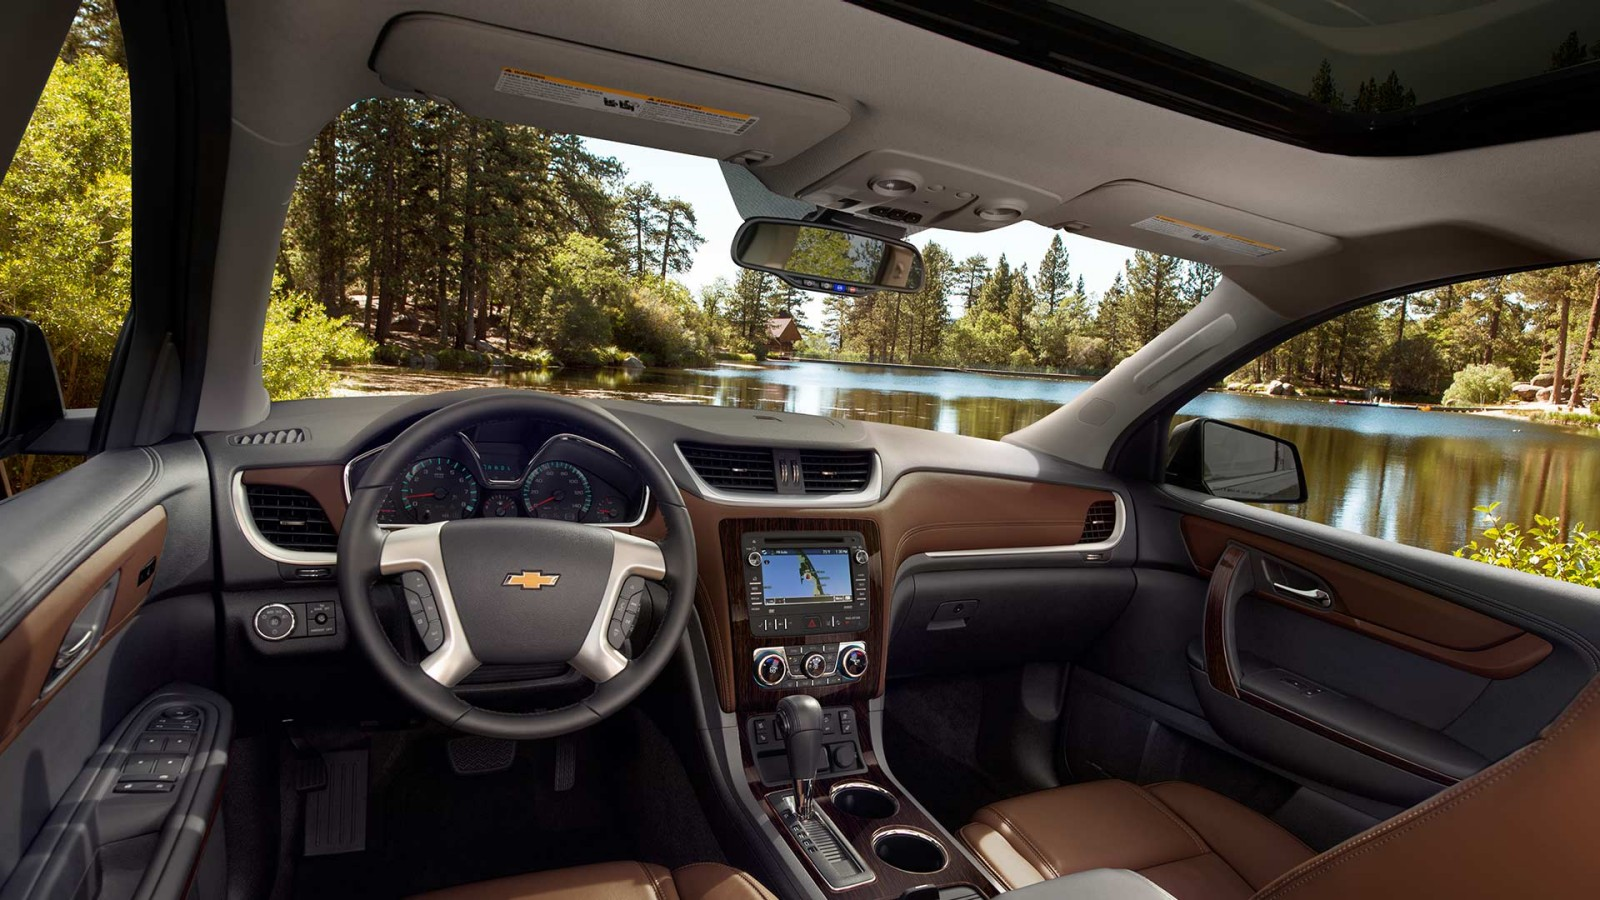 Interior of the 2017 Traverse